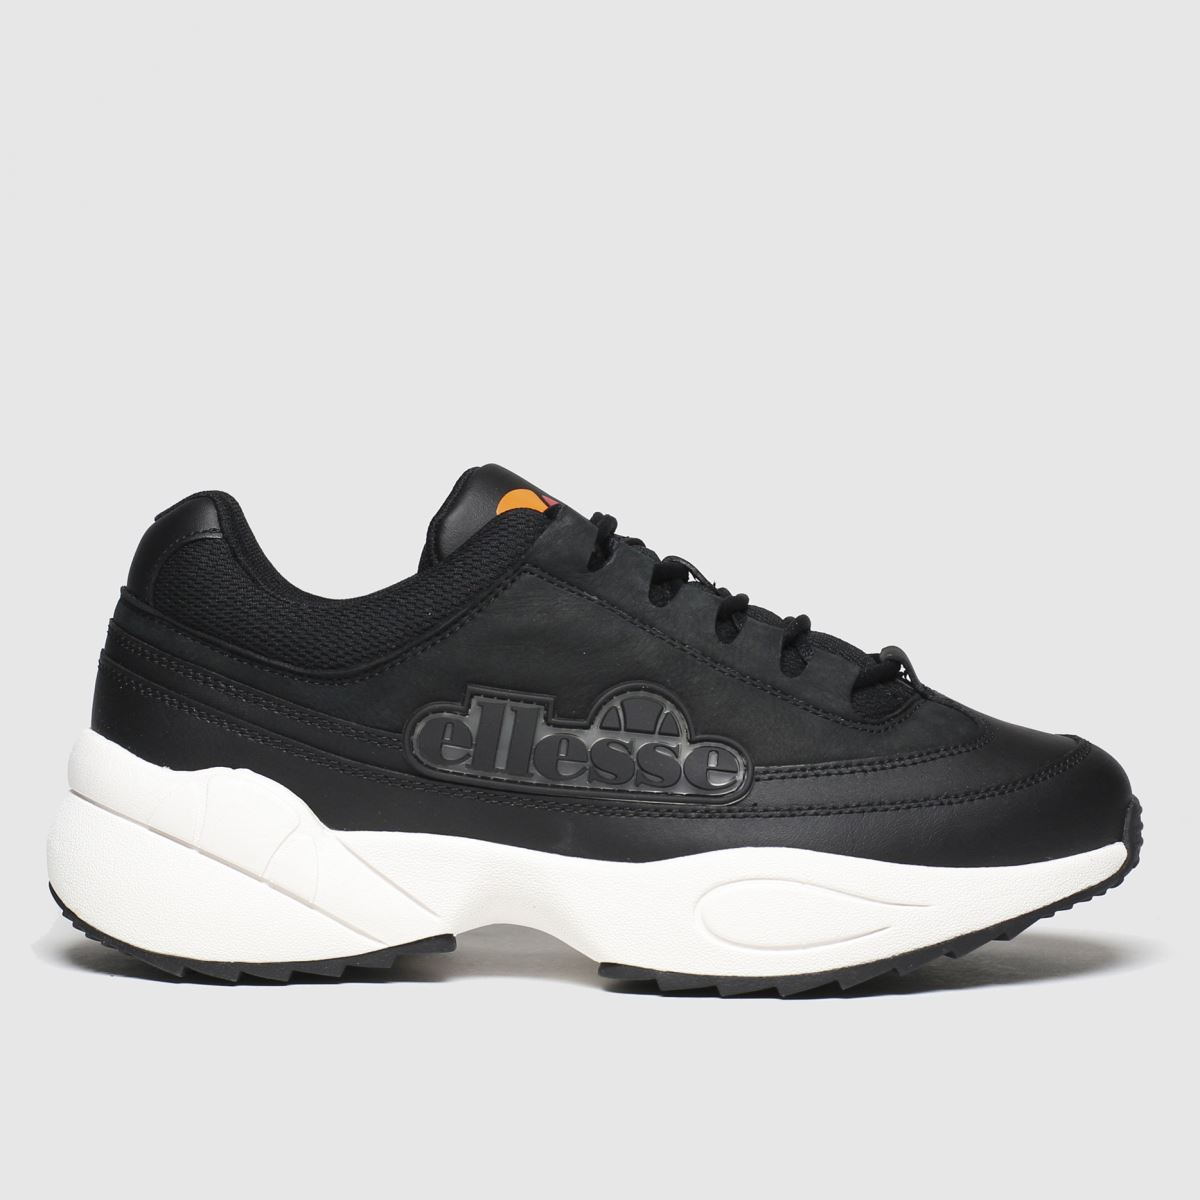 Ellesse Black & White Sparta Trainers